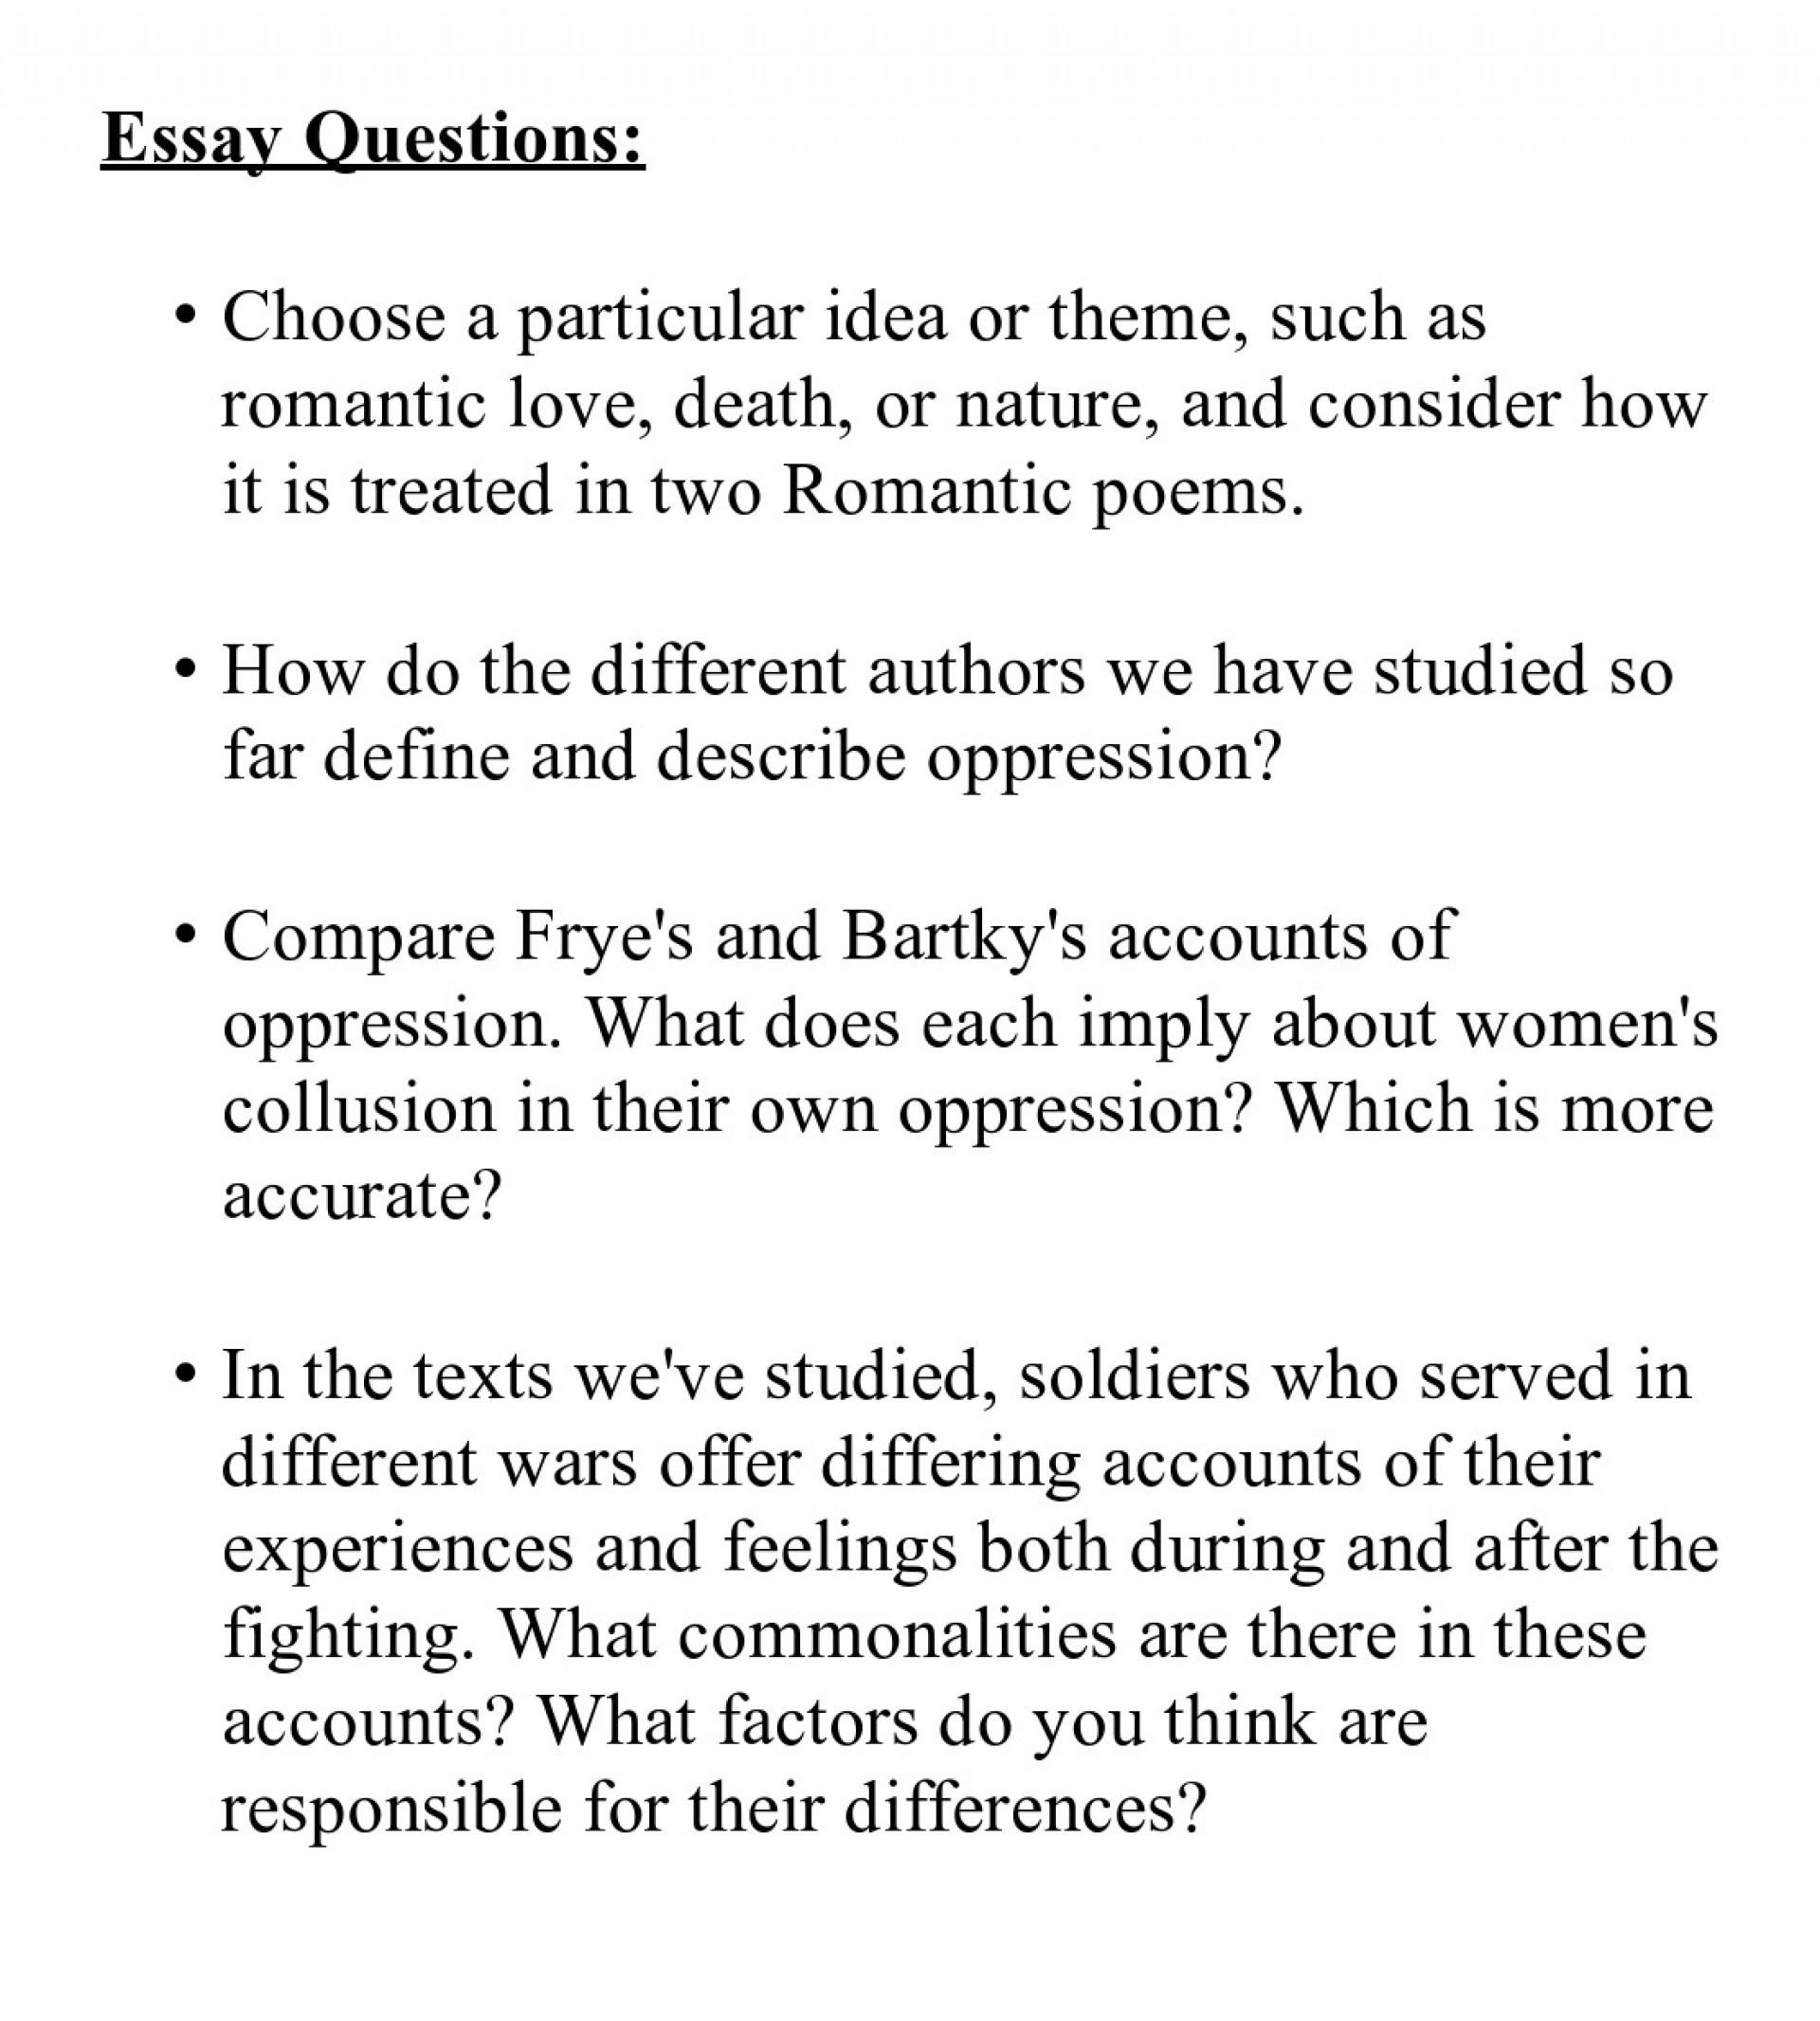 007 Essay Example Prompts Questions Best Persuasive College Creative Writing For Macbeth High School Economics 1920